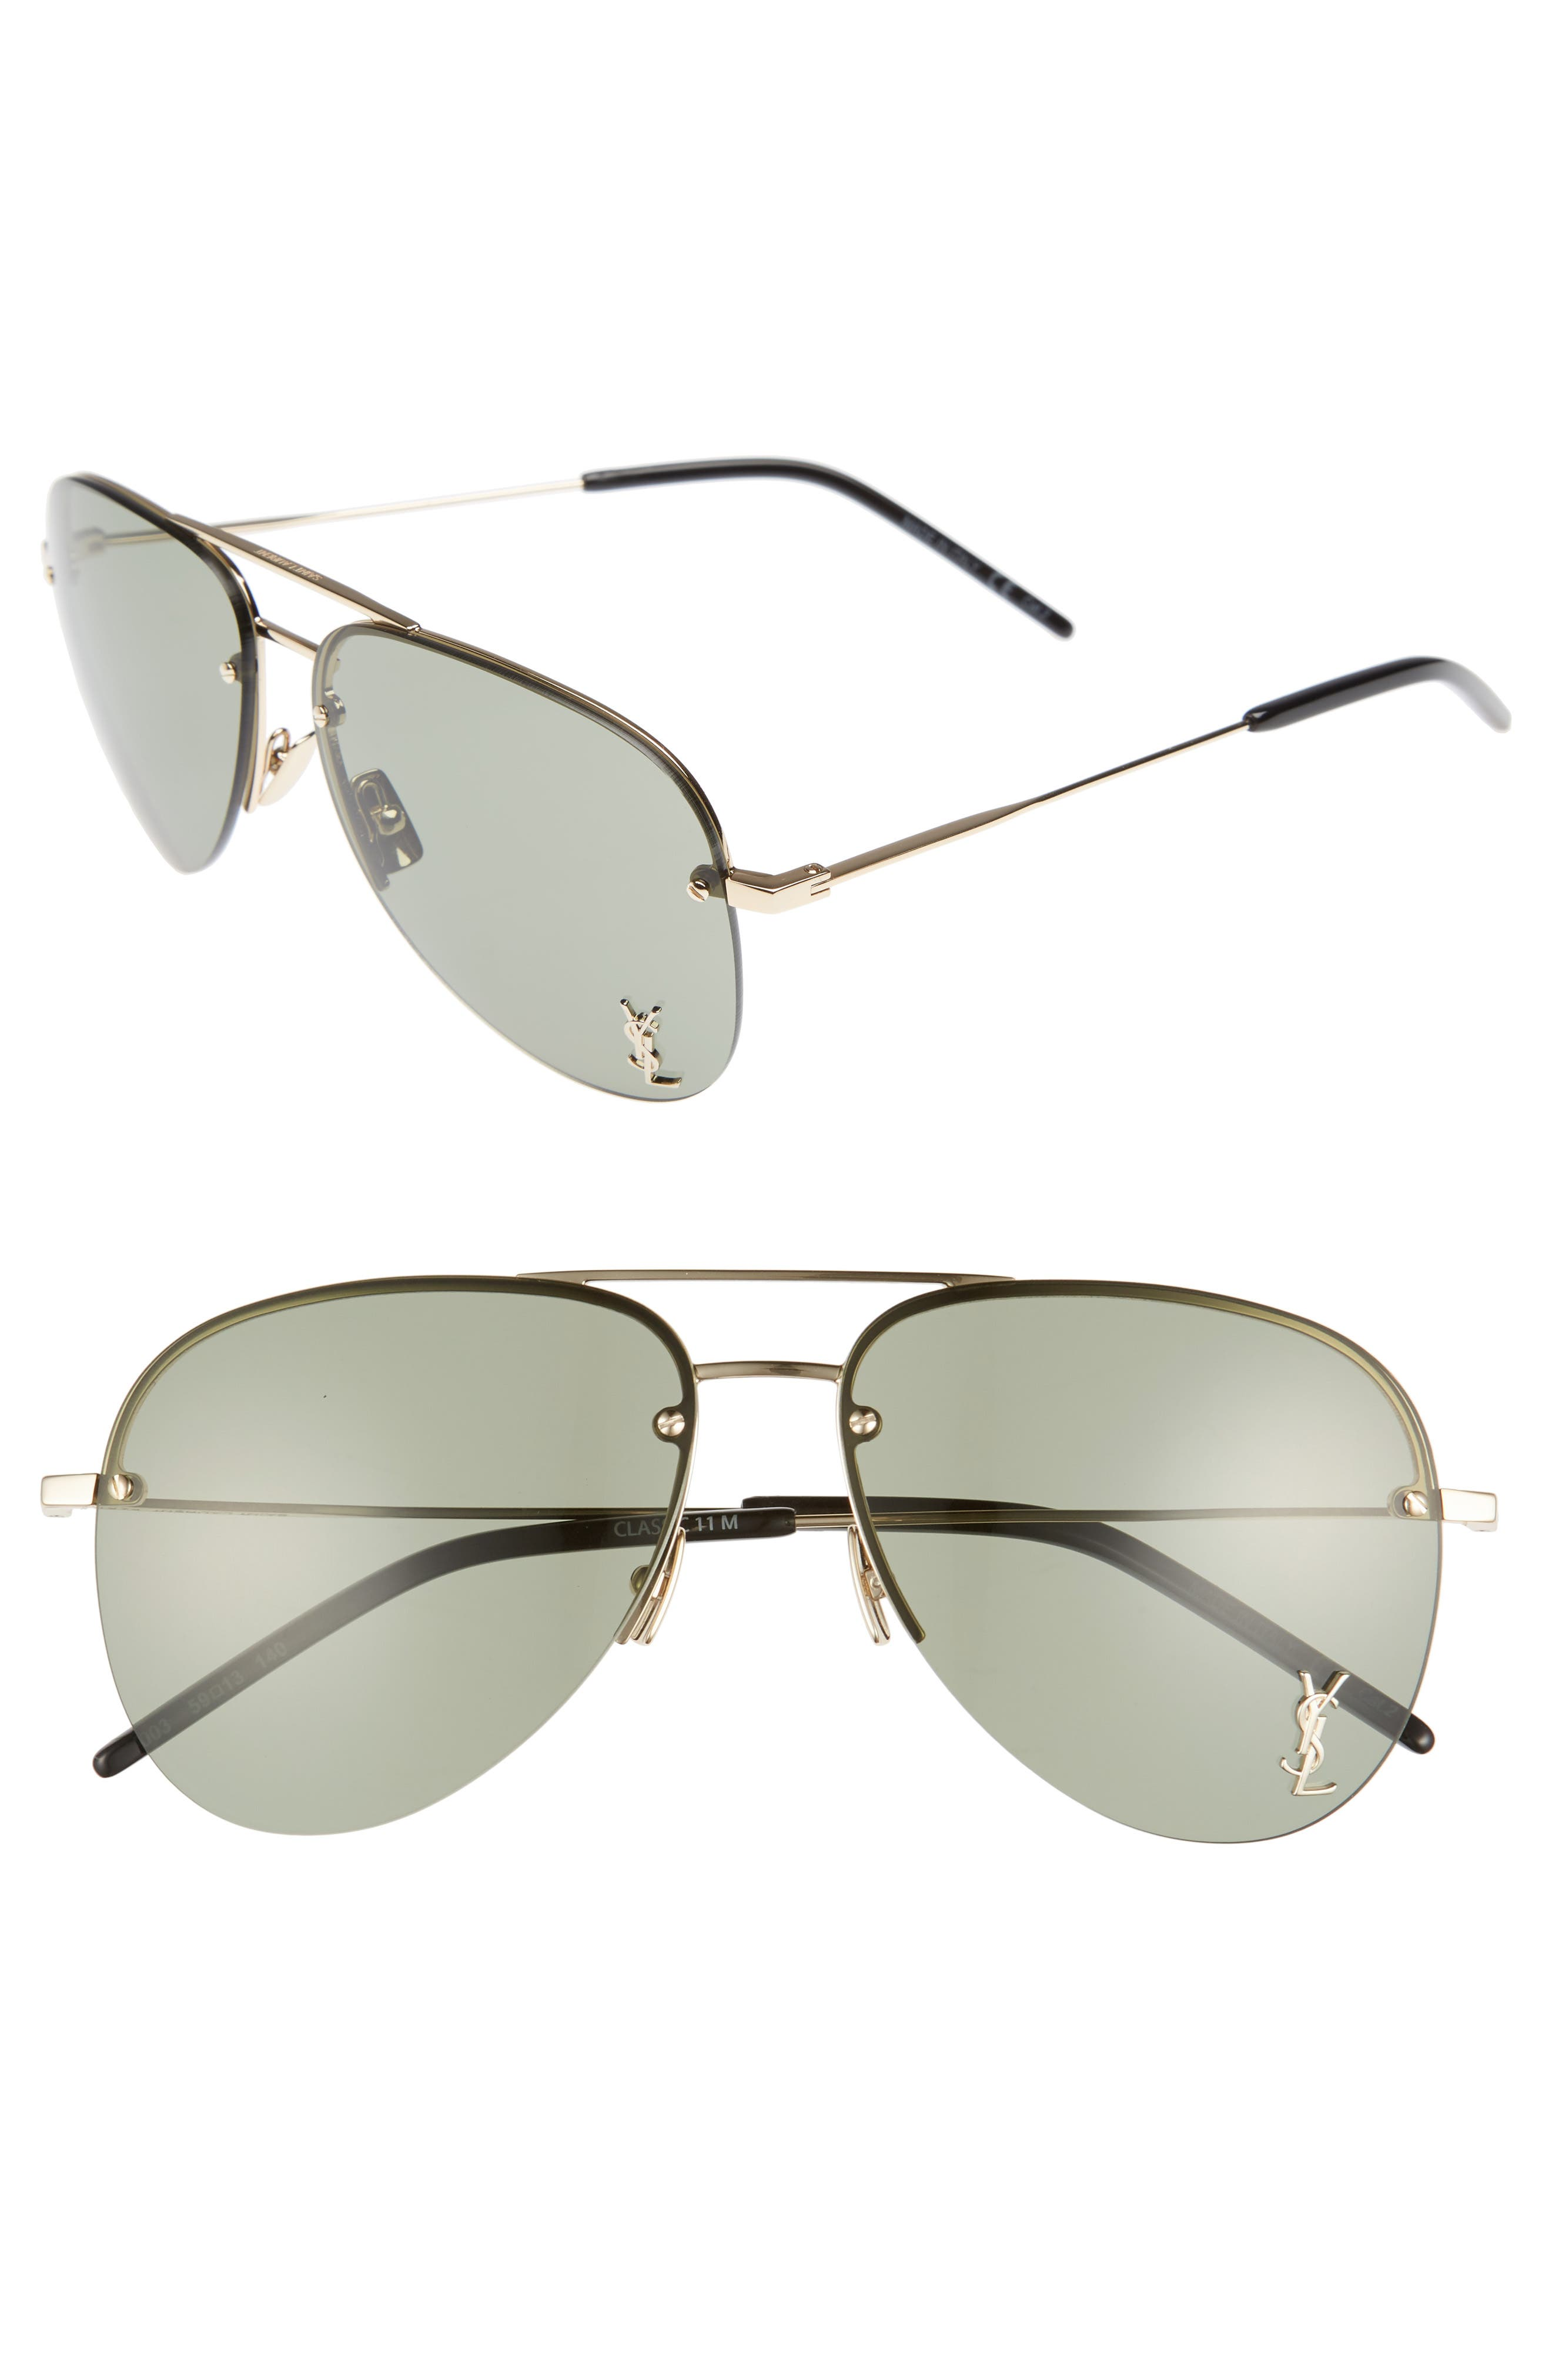 59mm Aviator Sunglasses,                         Main,                         color, GOLD